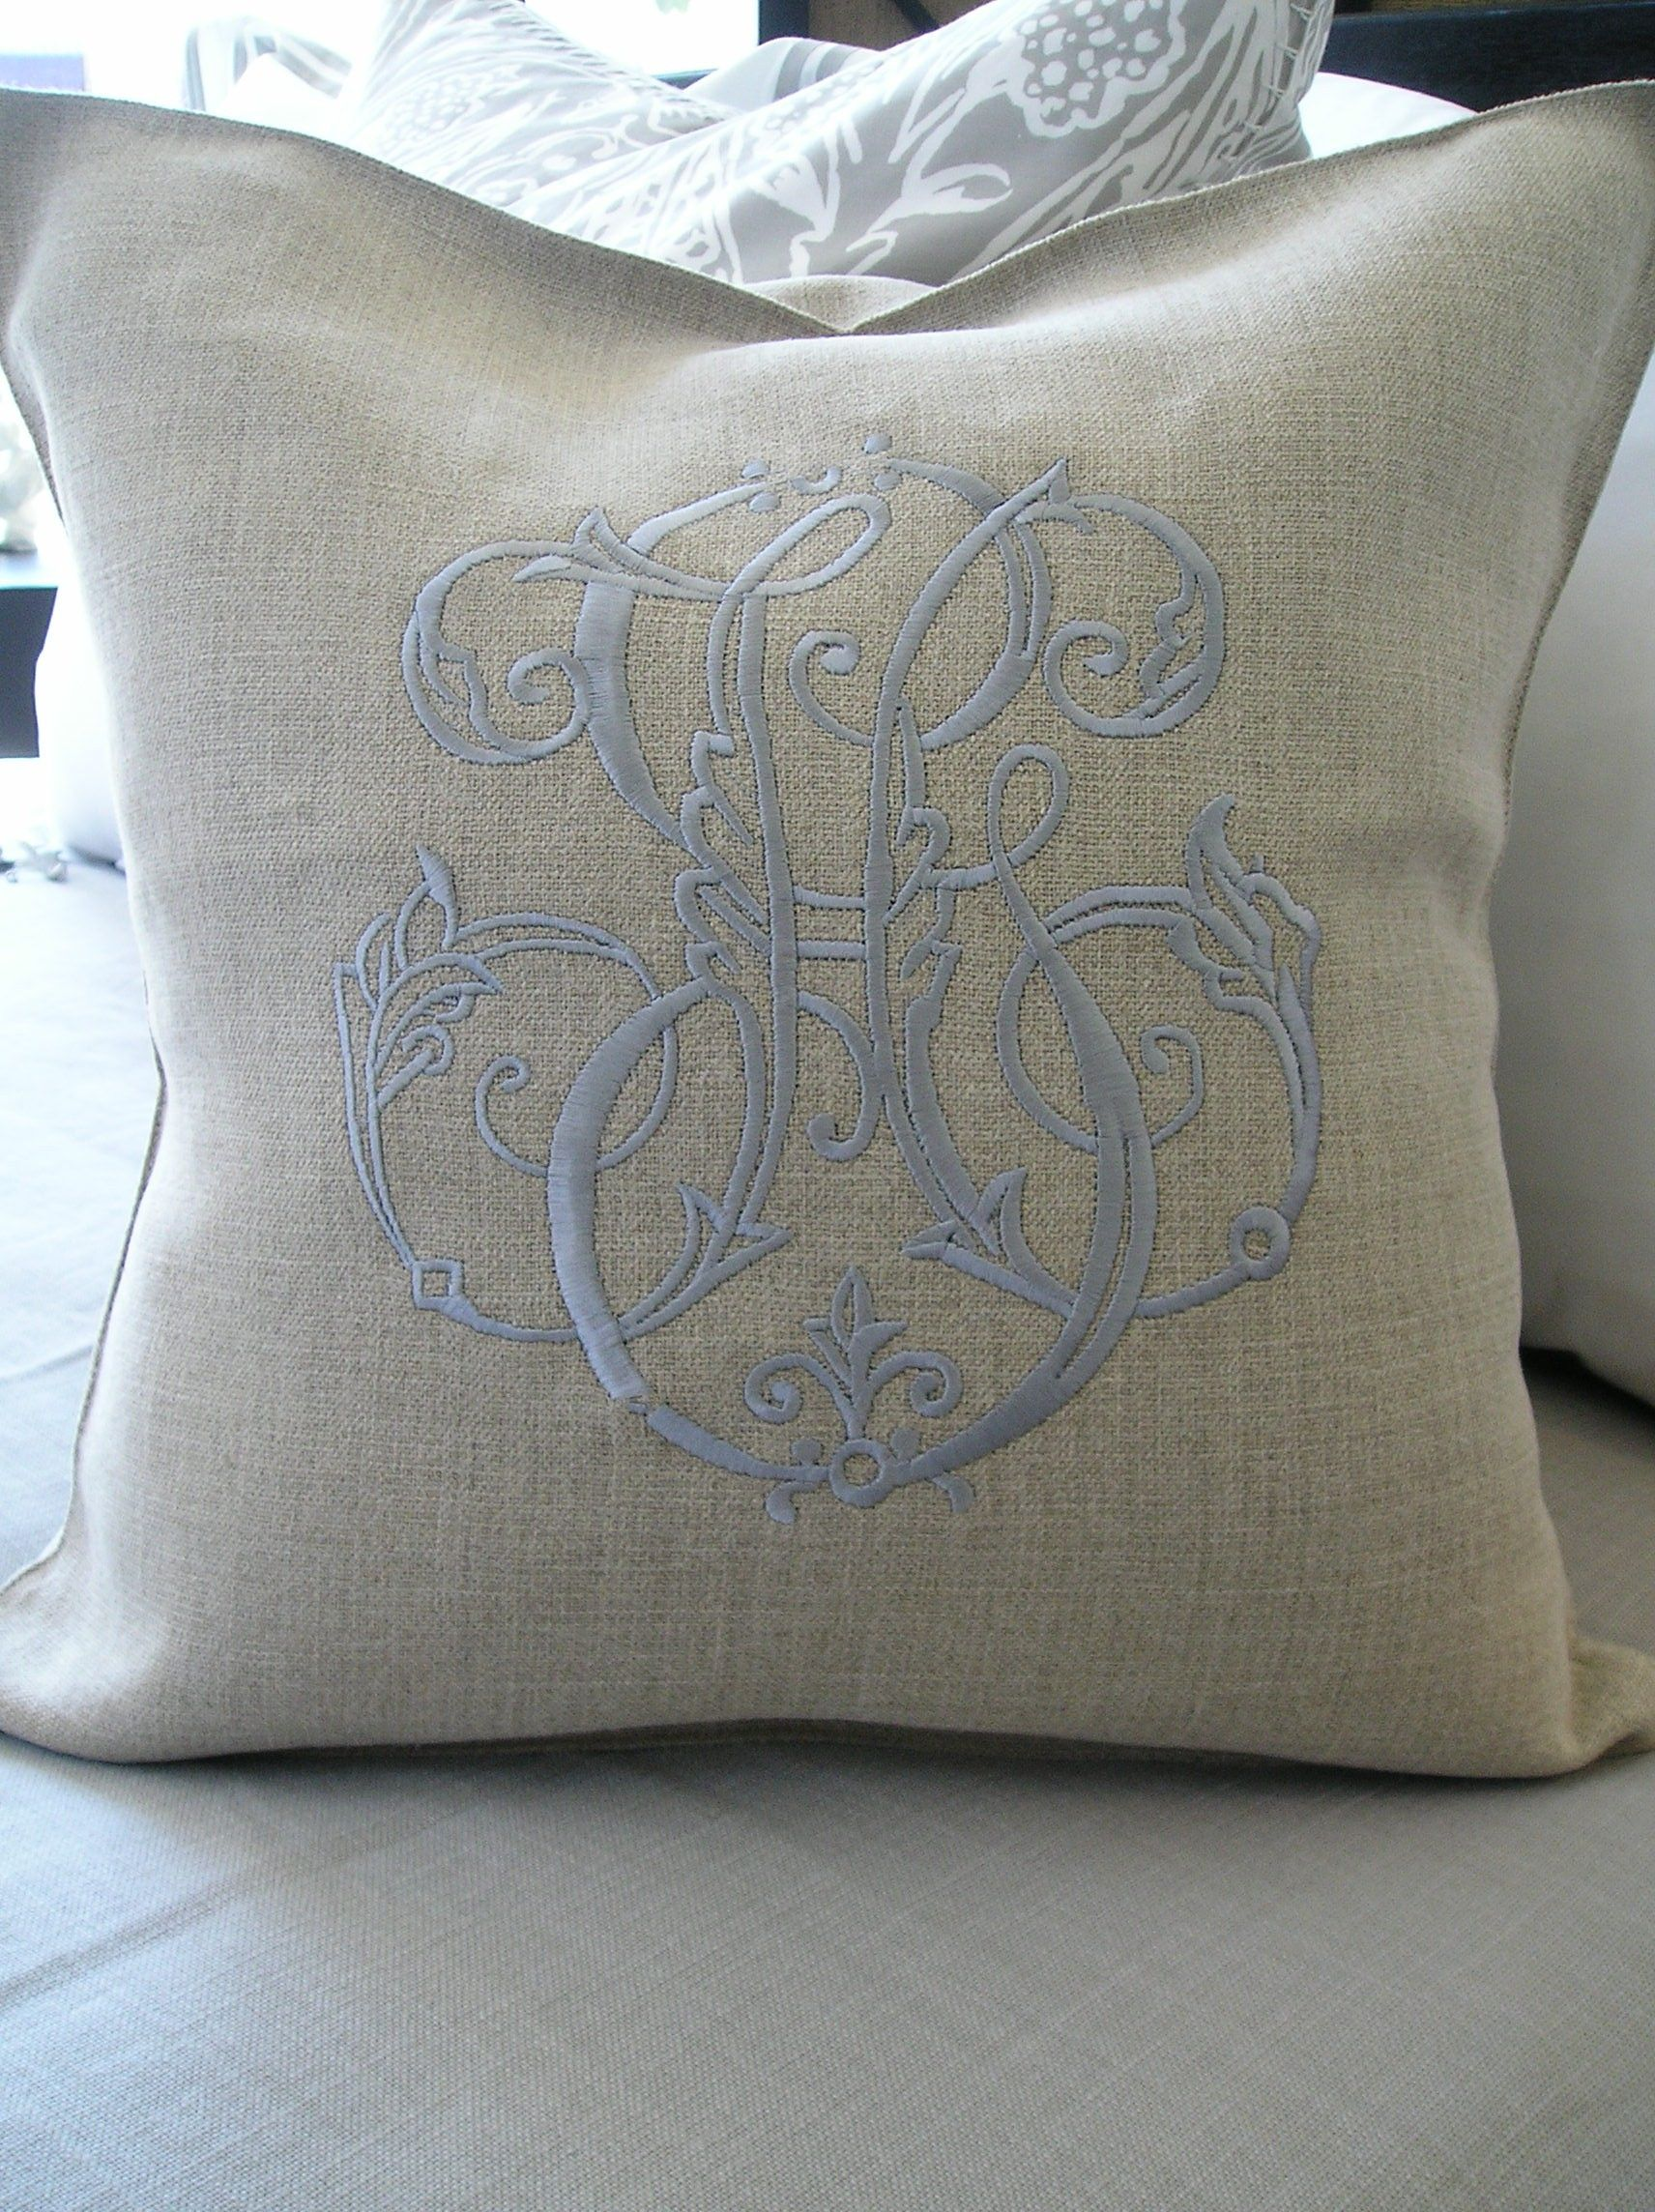 air savvy the monogrammed cricut pillows cover budget pillow bride monogram using glitter explore